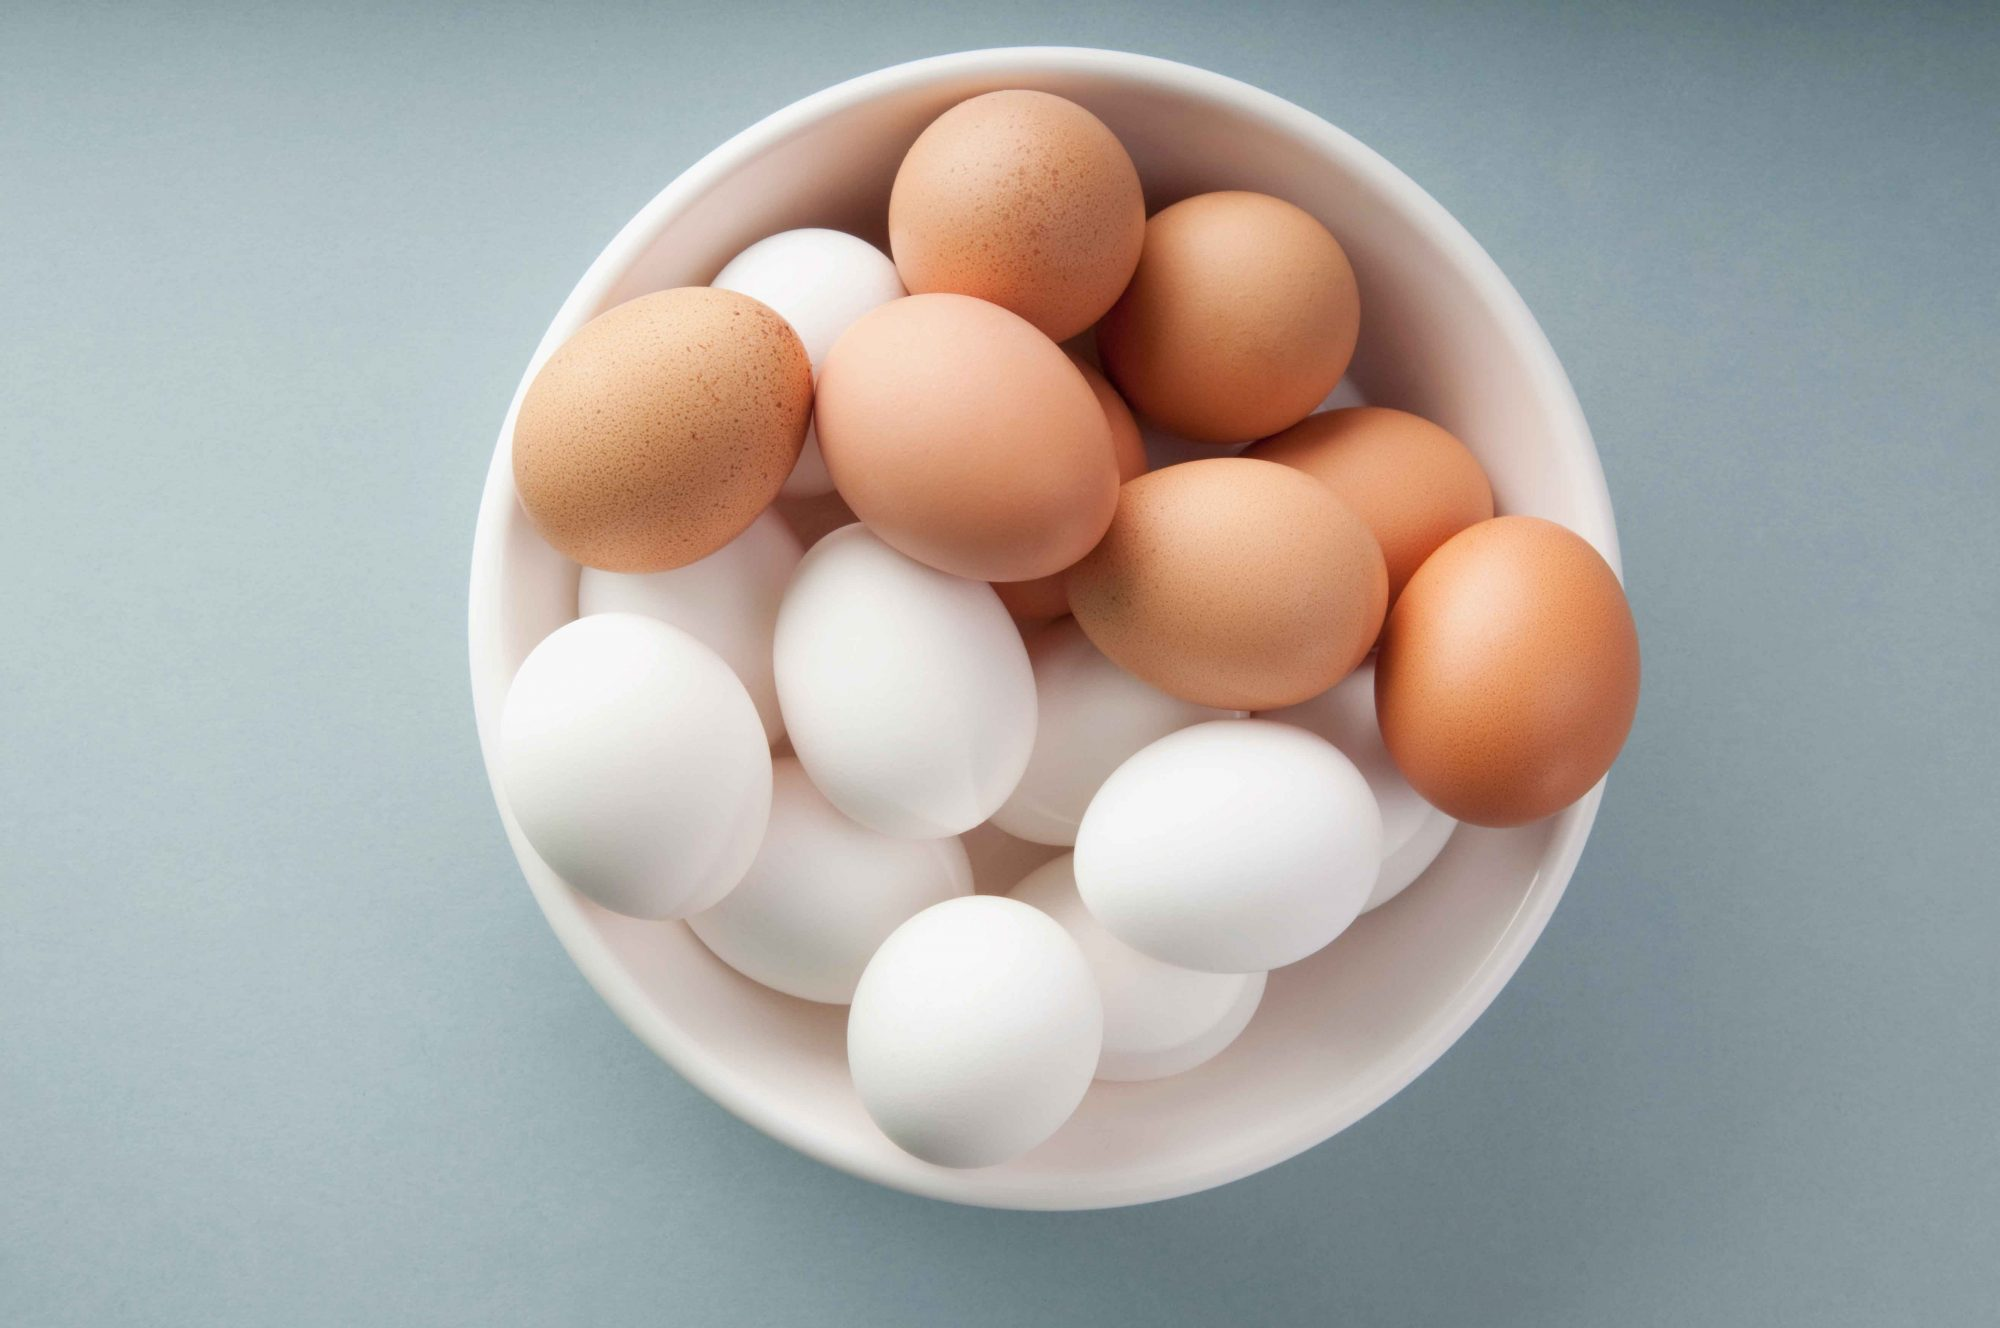 EC: Why Do Eggs Give You Gas?